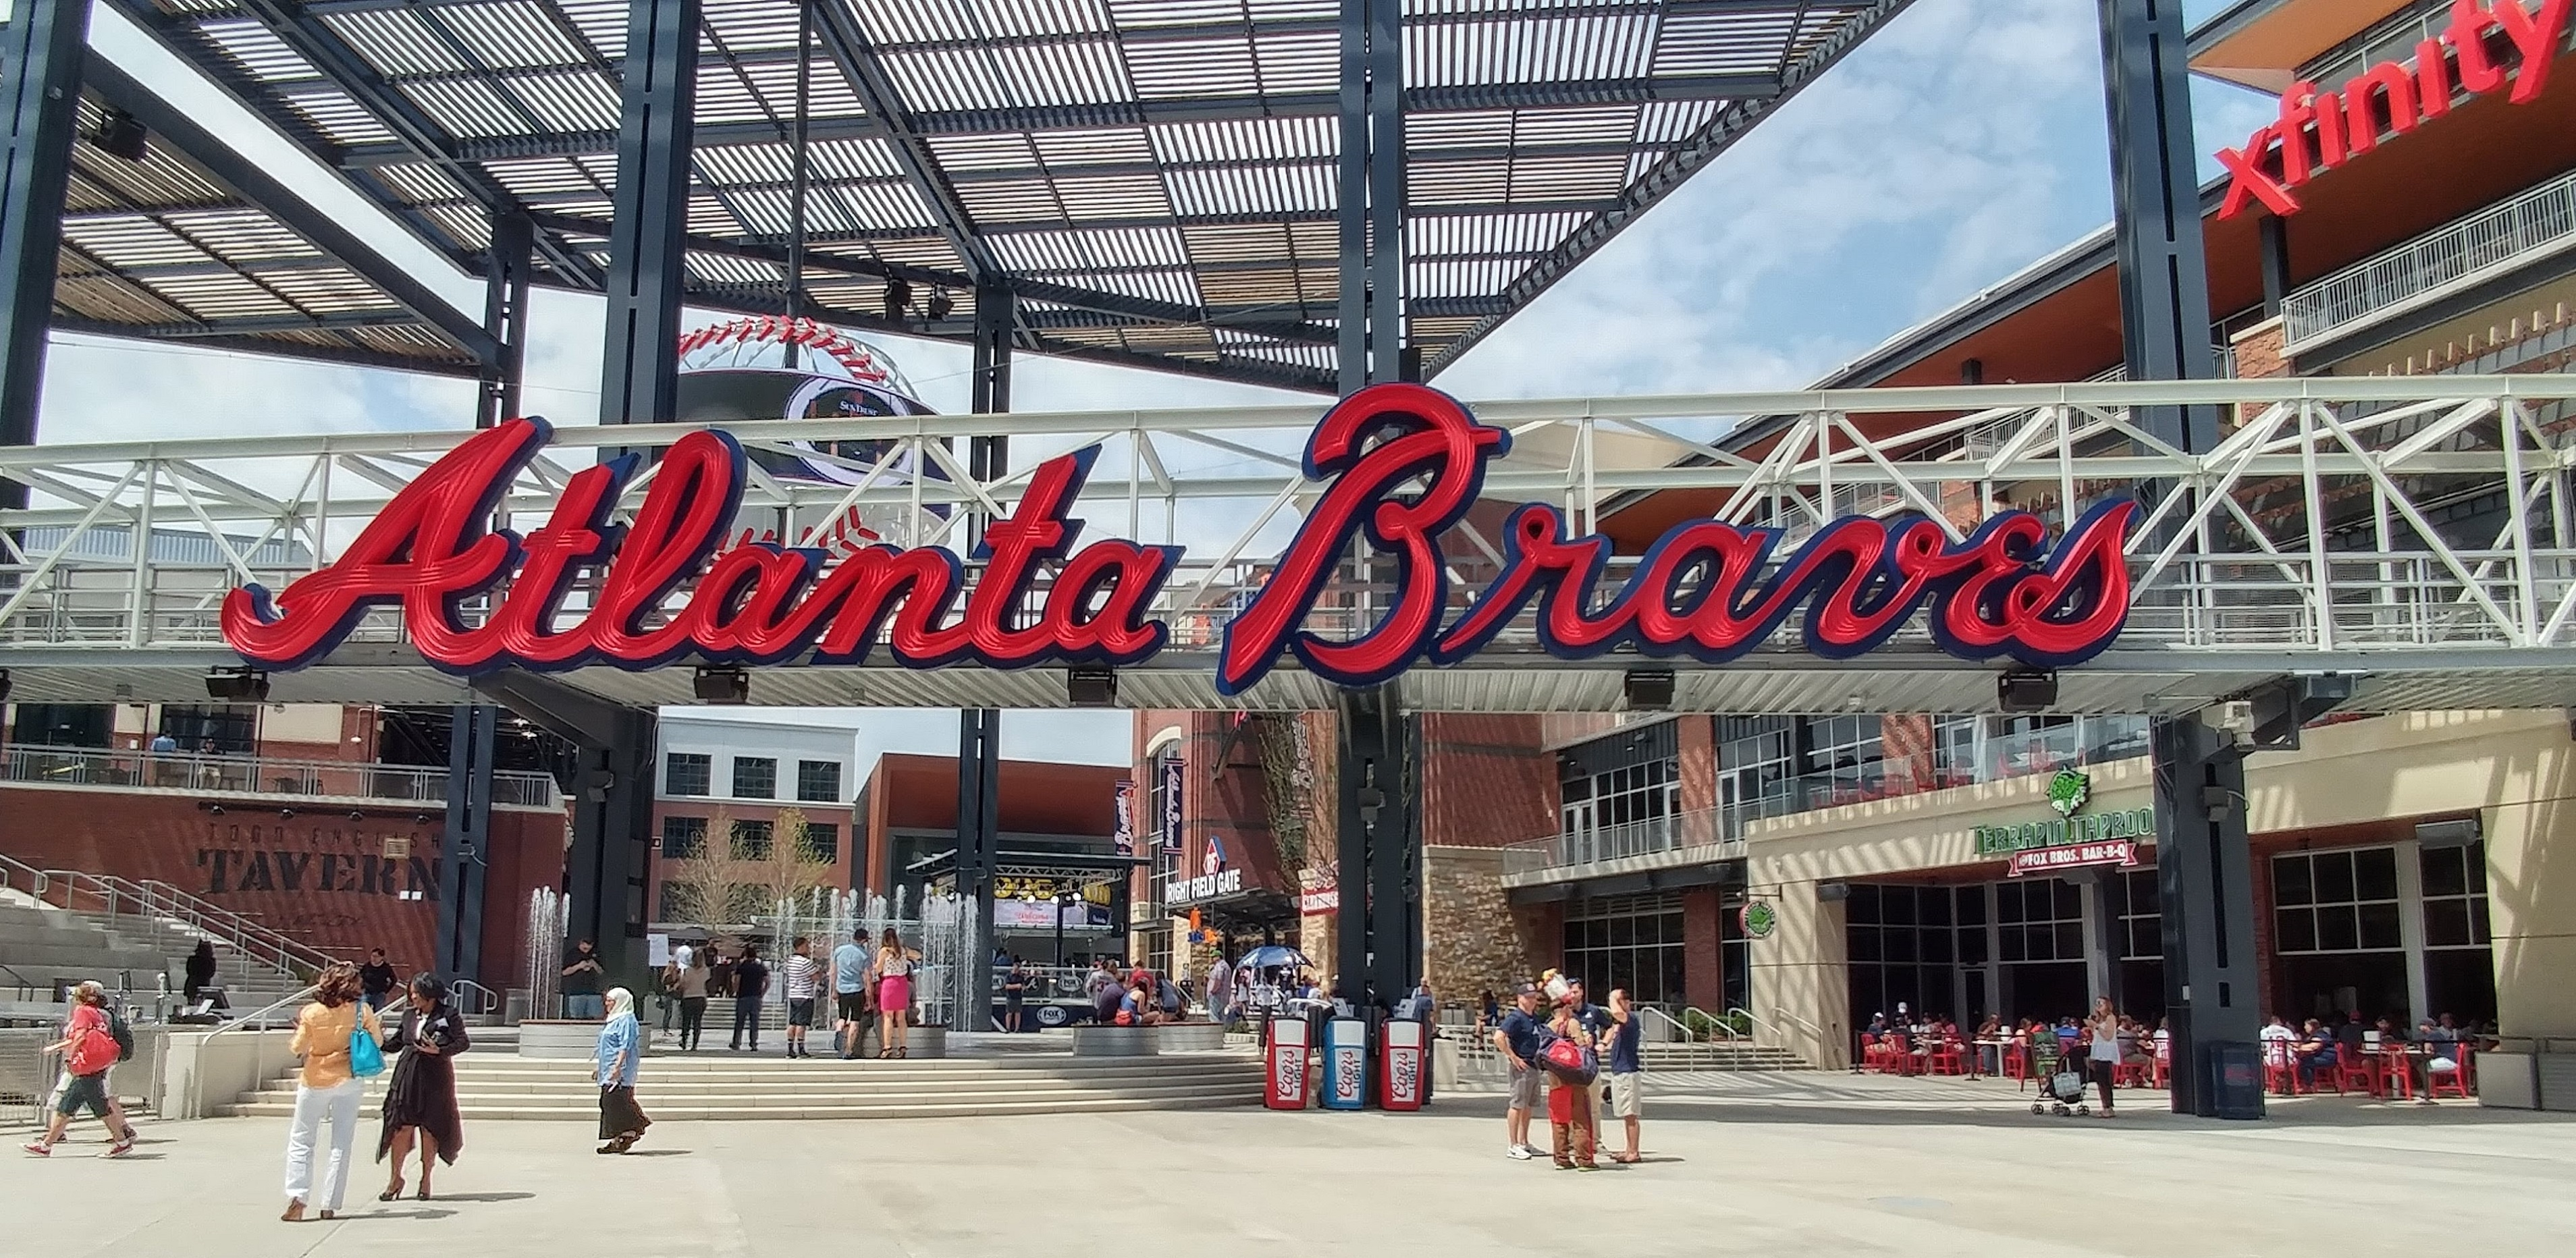 Atlanta Braves SunTrust Park Entrance